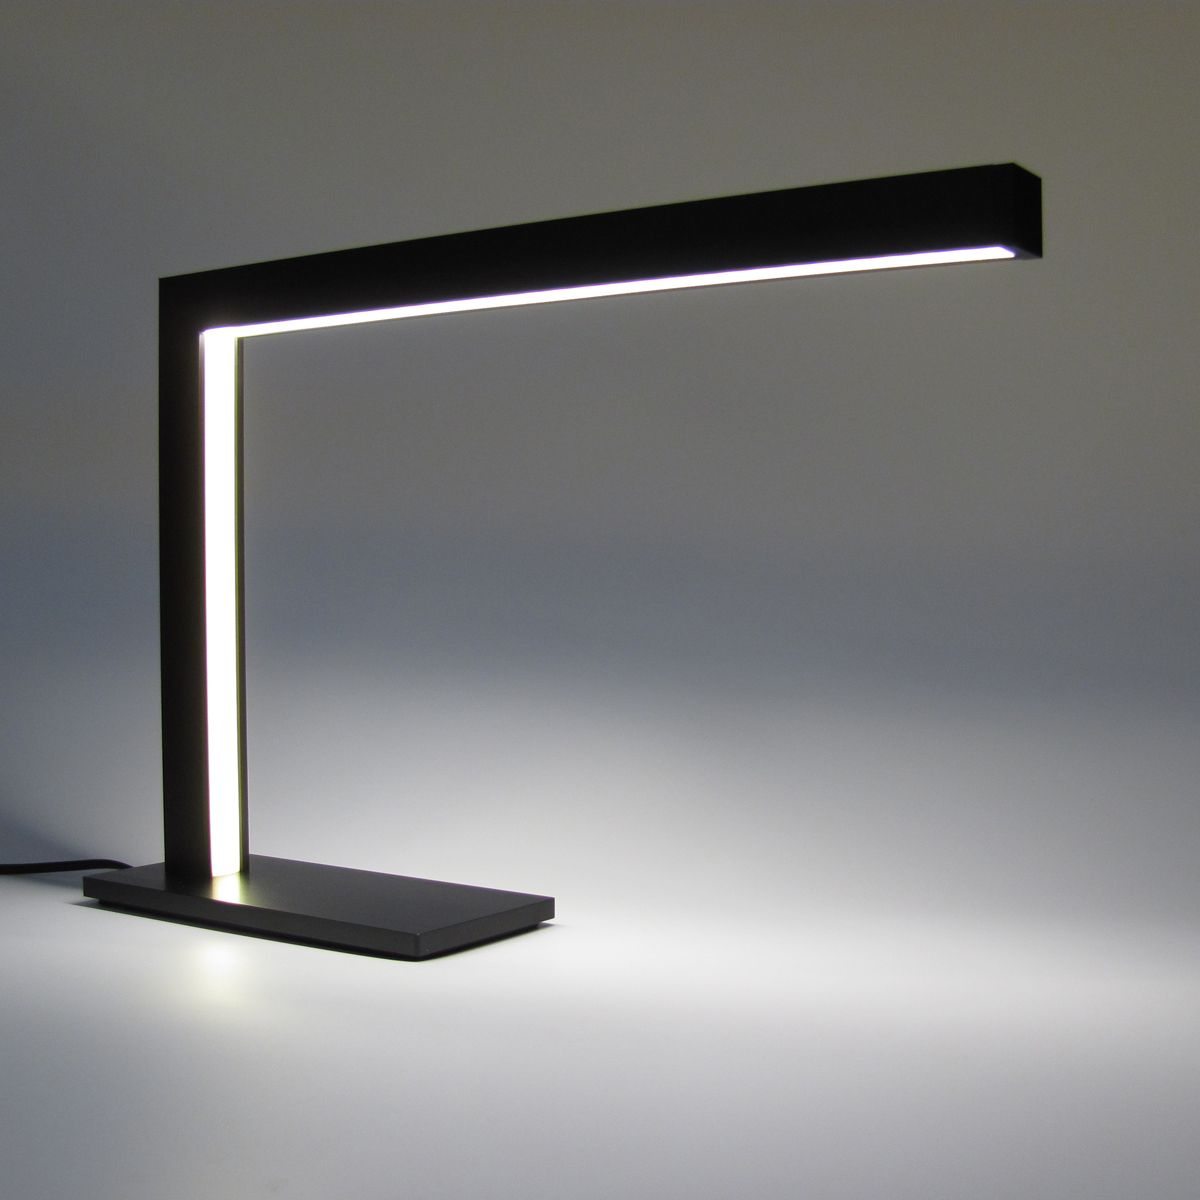 33 Awesome Modern Led Desk Lamp Images